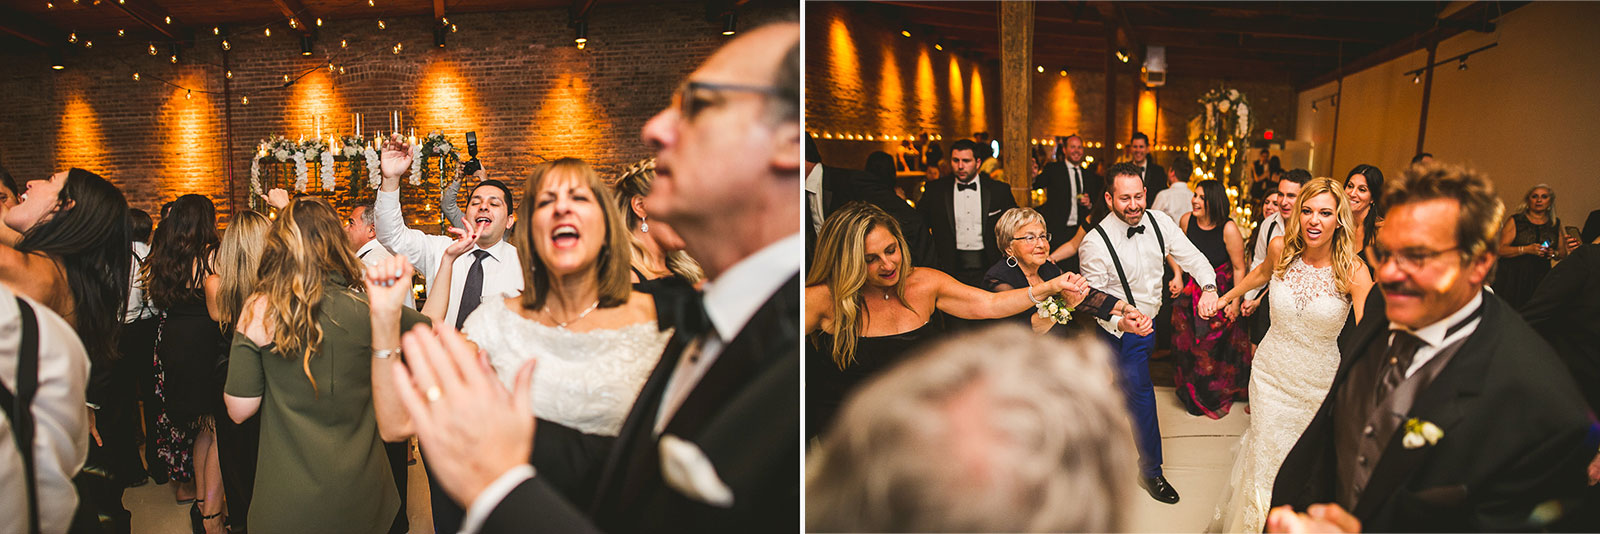 73 best reception photography by peter gubernat - Chicago Wedding Photography at Gallery 1028 // Courtnie + David